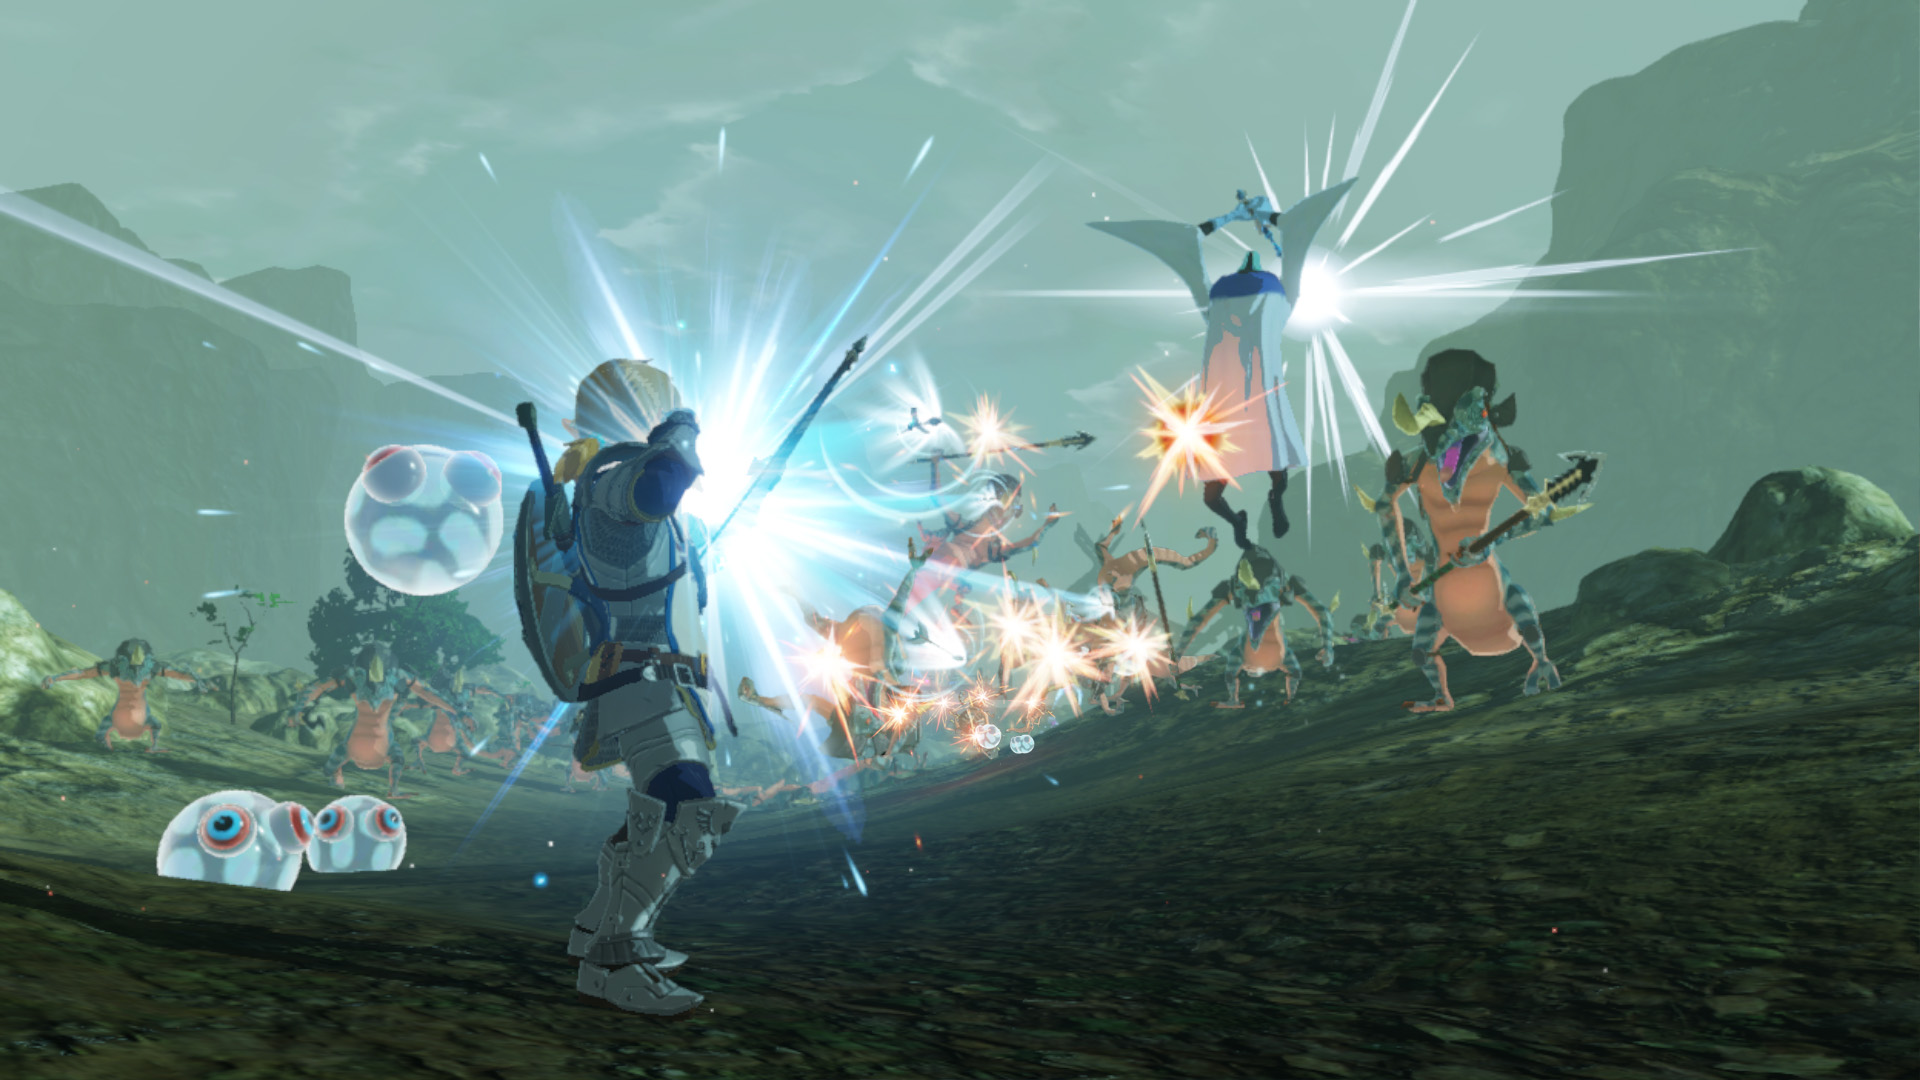 Breath Of The Wild Prequel Hyrule Warriors Age Of Calamity Gets Lovely Screenshots